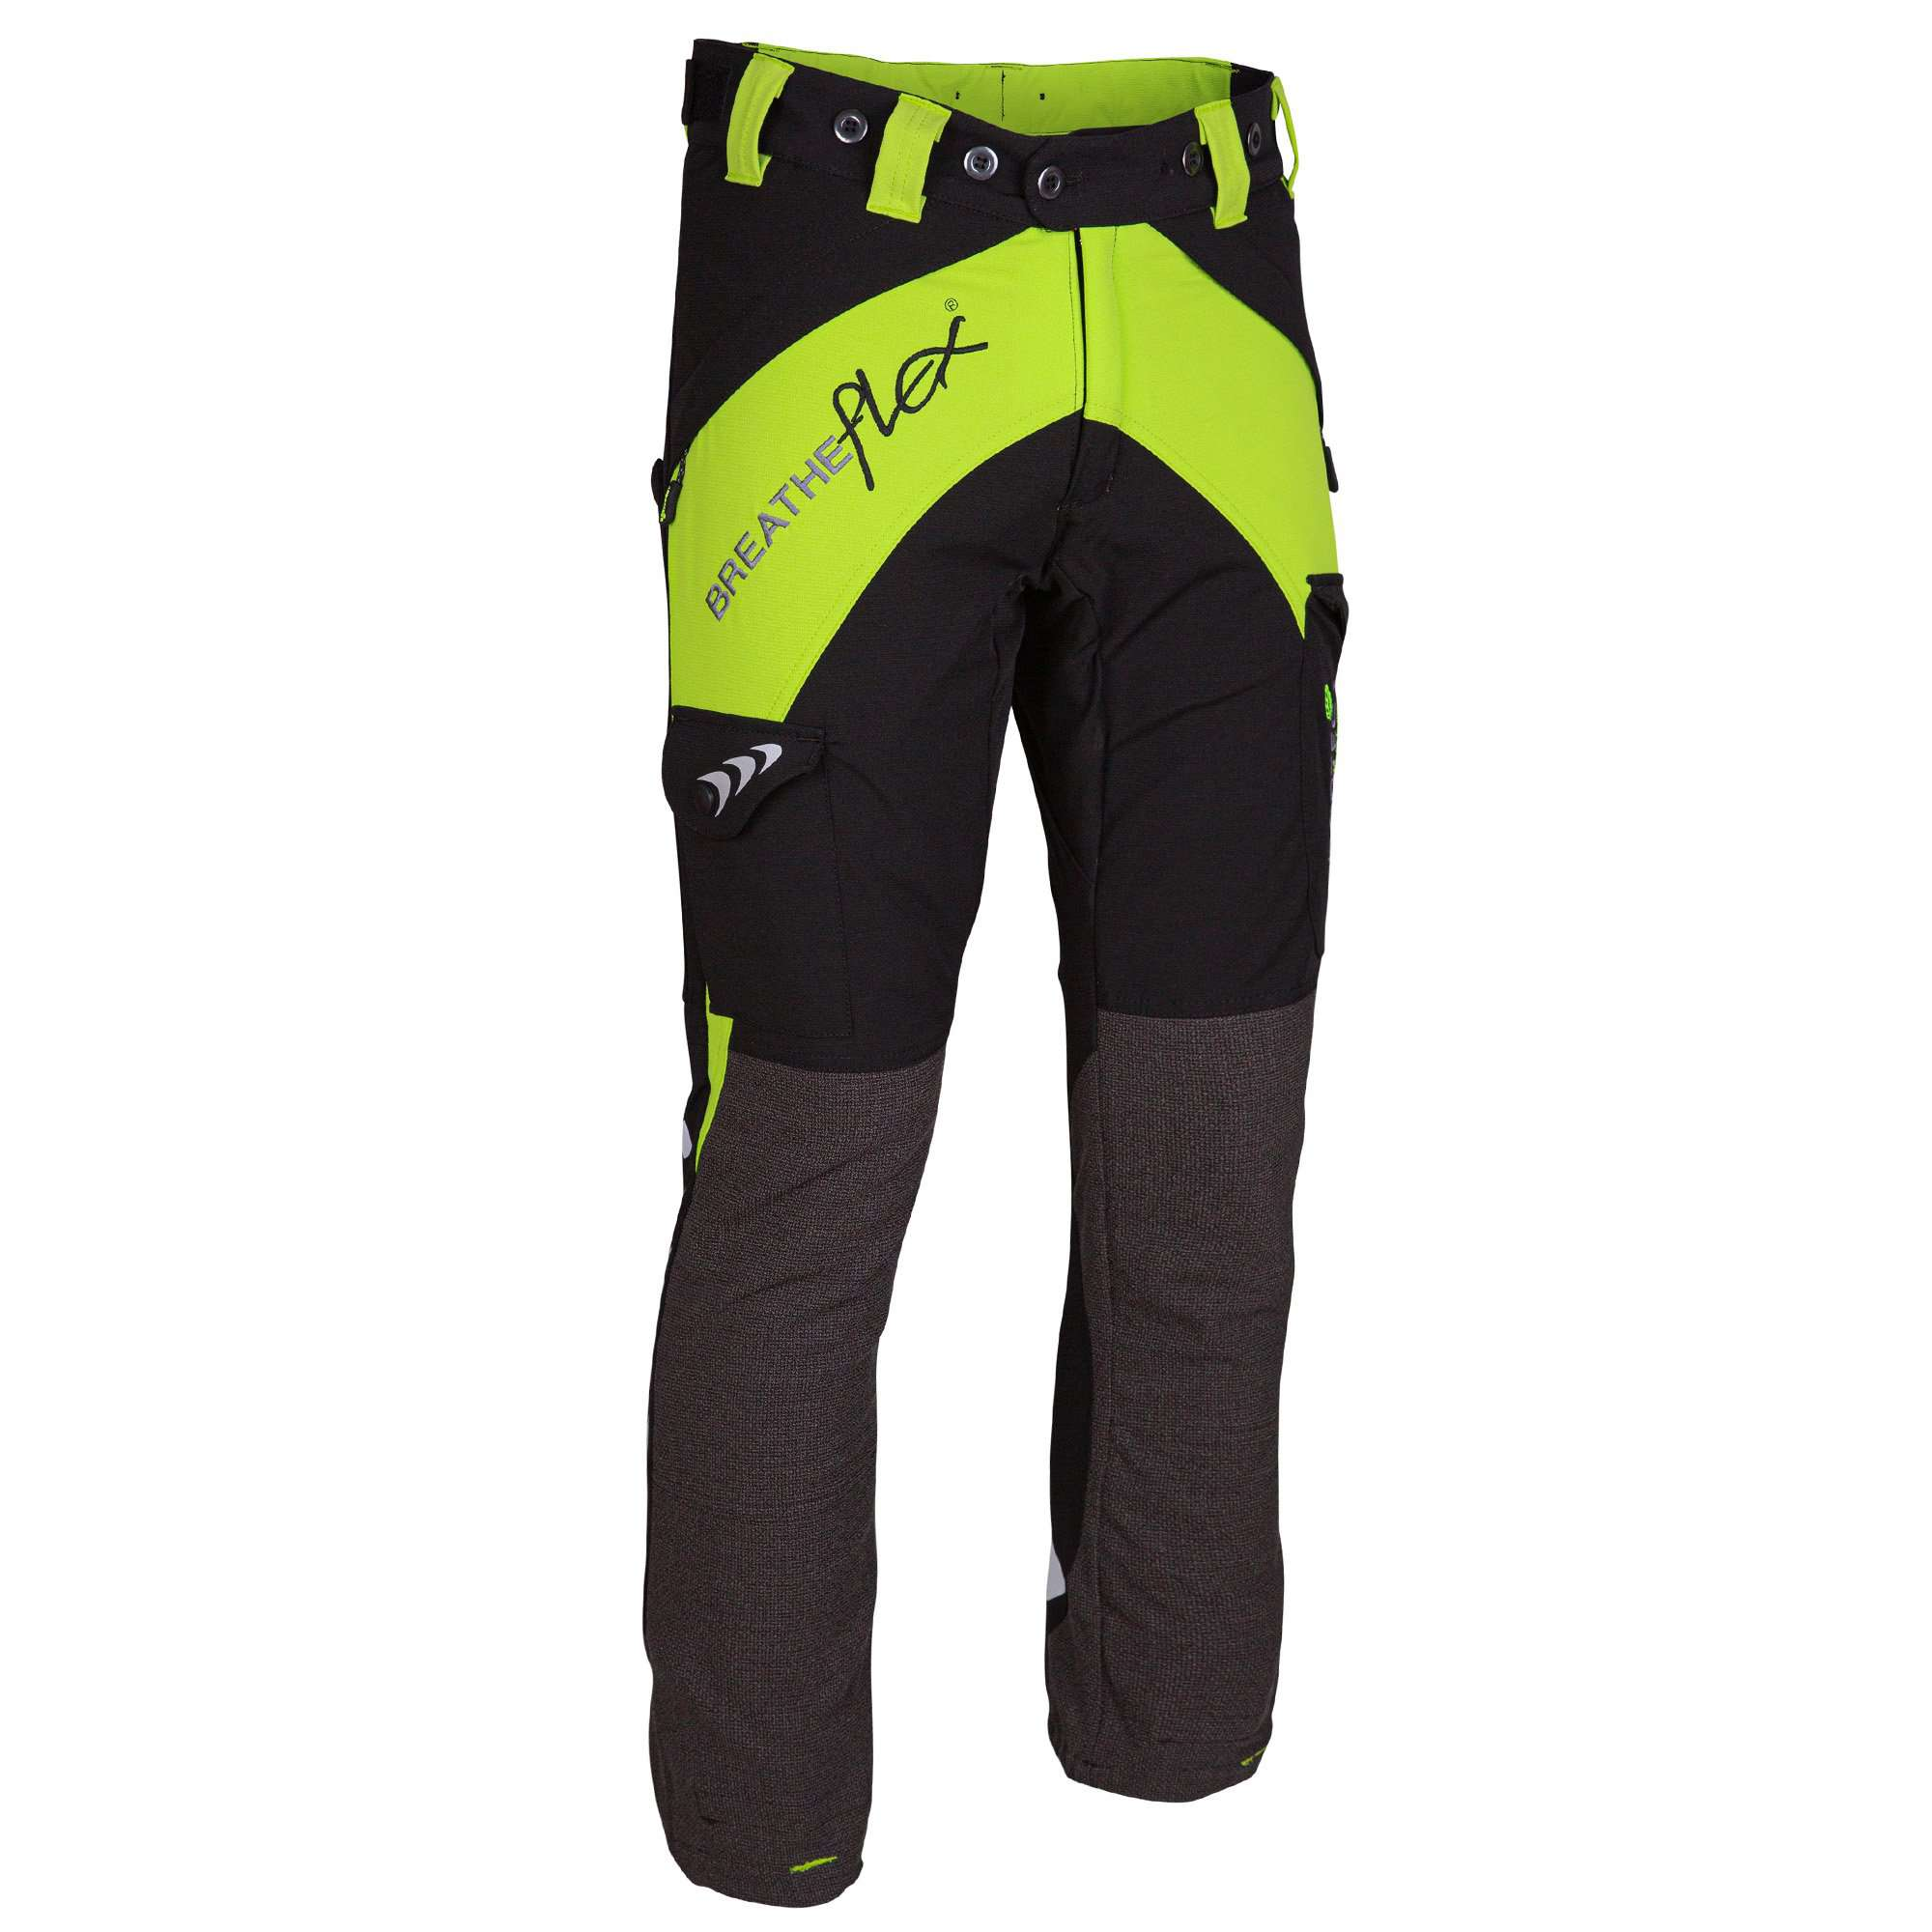 AT4010 Breatheflex Ladies Type A Class 1 Chainsaw Trousers - Lime